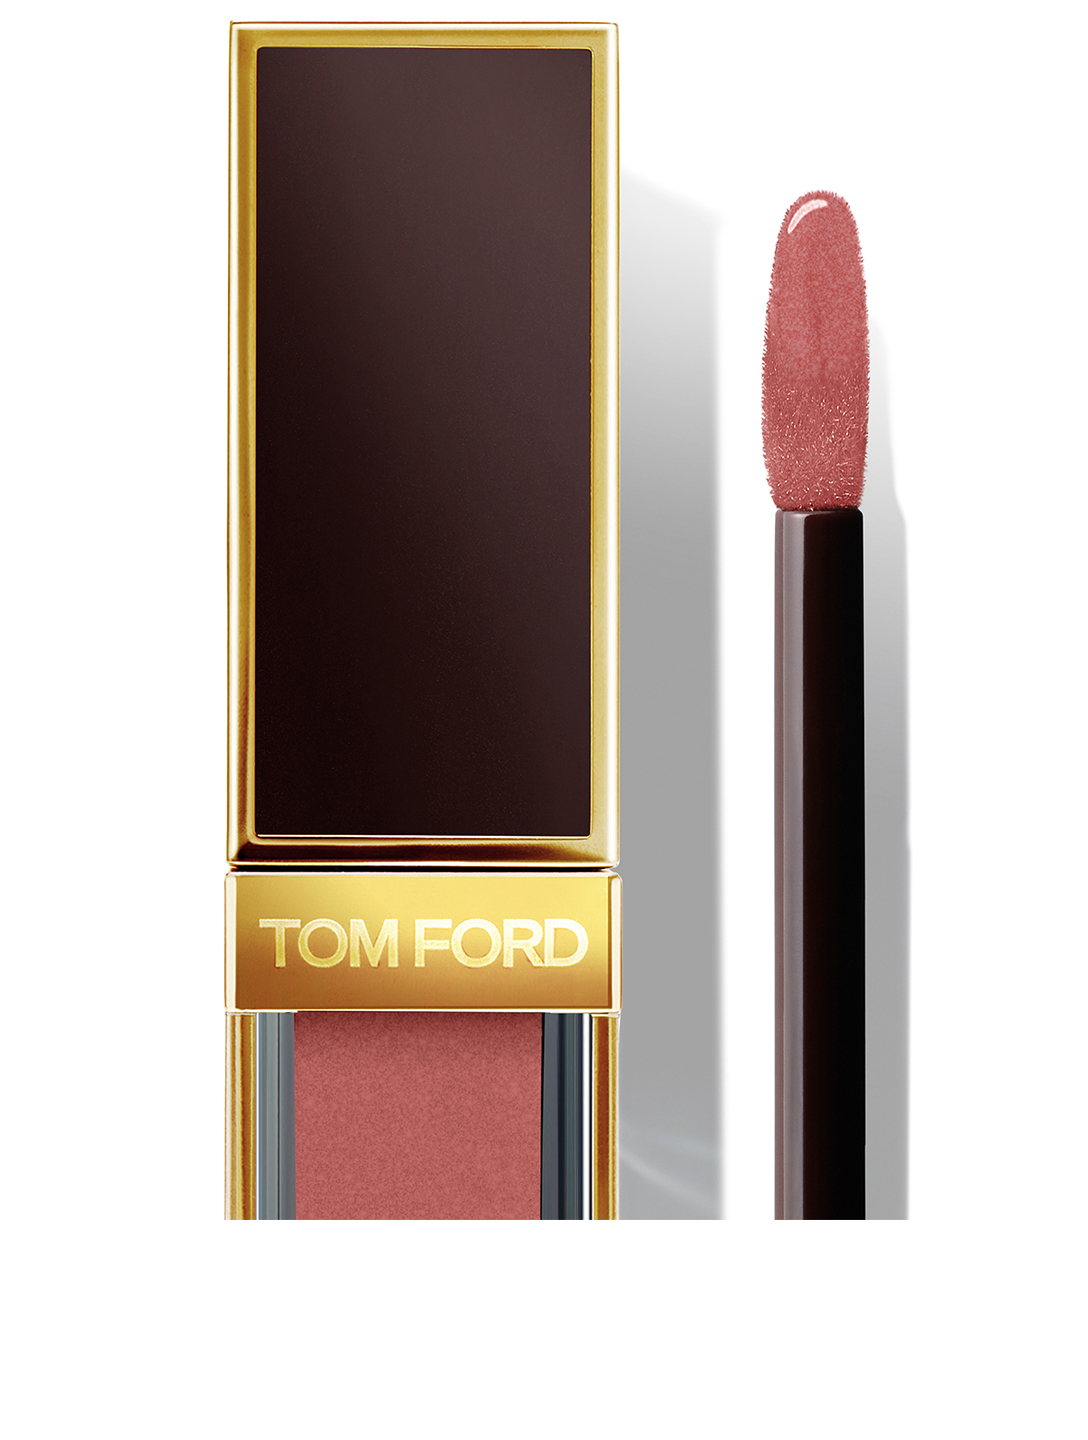 TOM FORD Gloss Luxe Lip Balm Beauty Pink